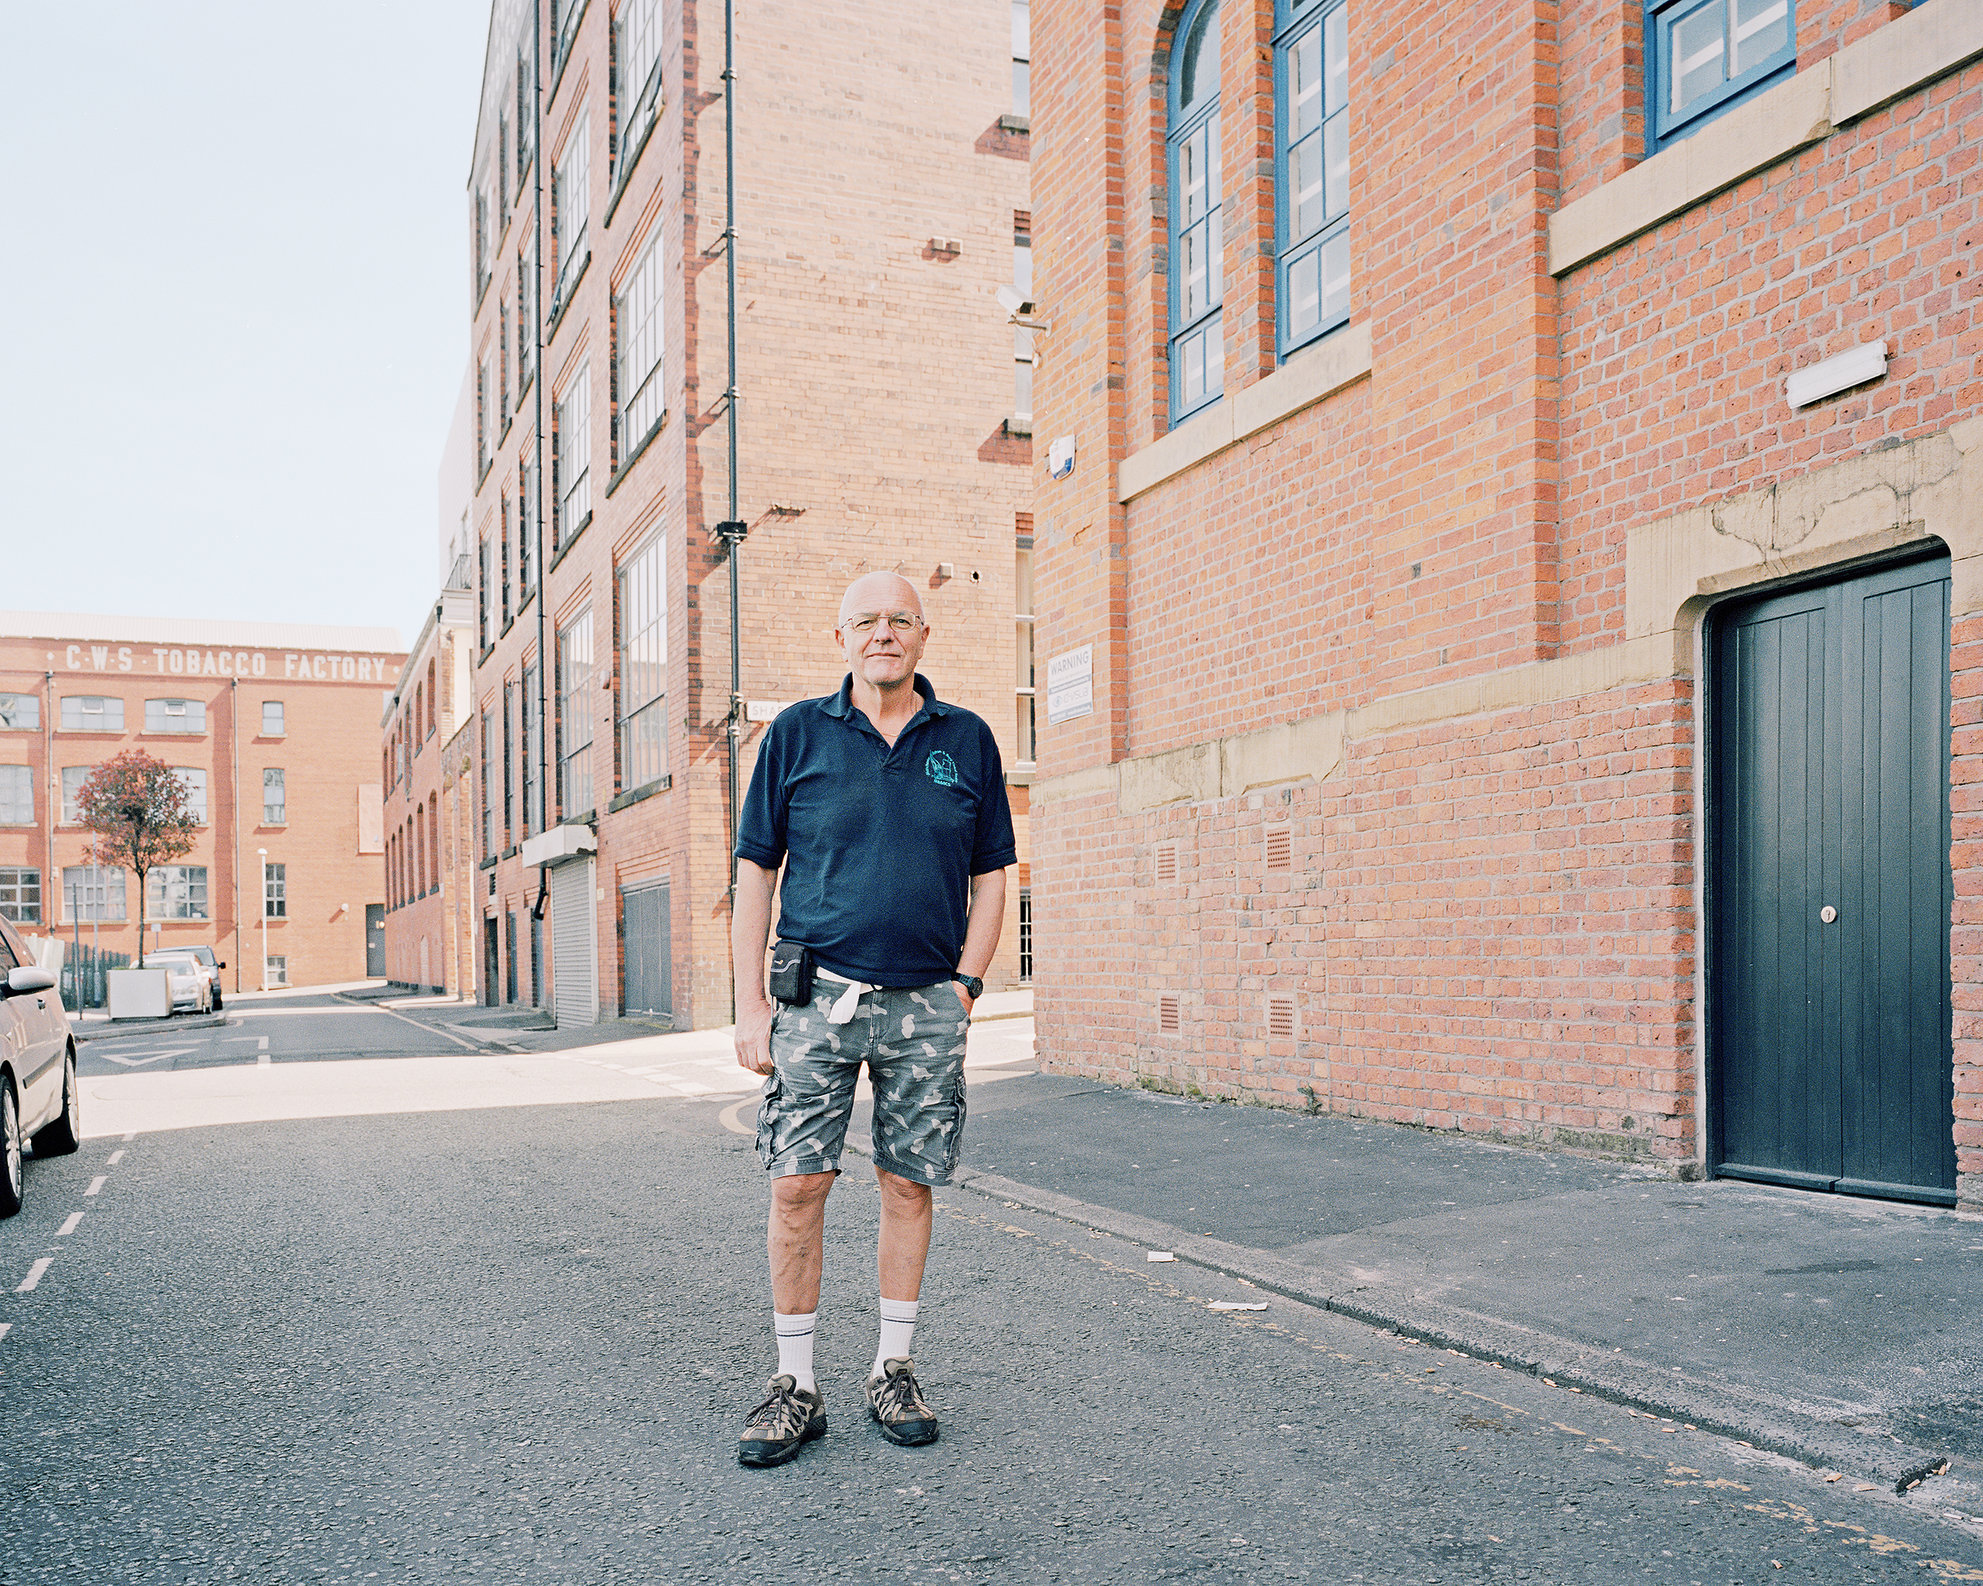 Paul Hindle, Angel Meadow, Manchester